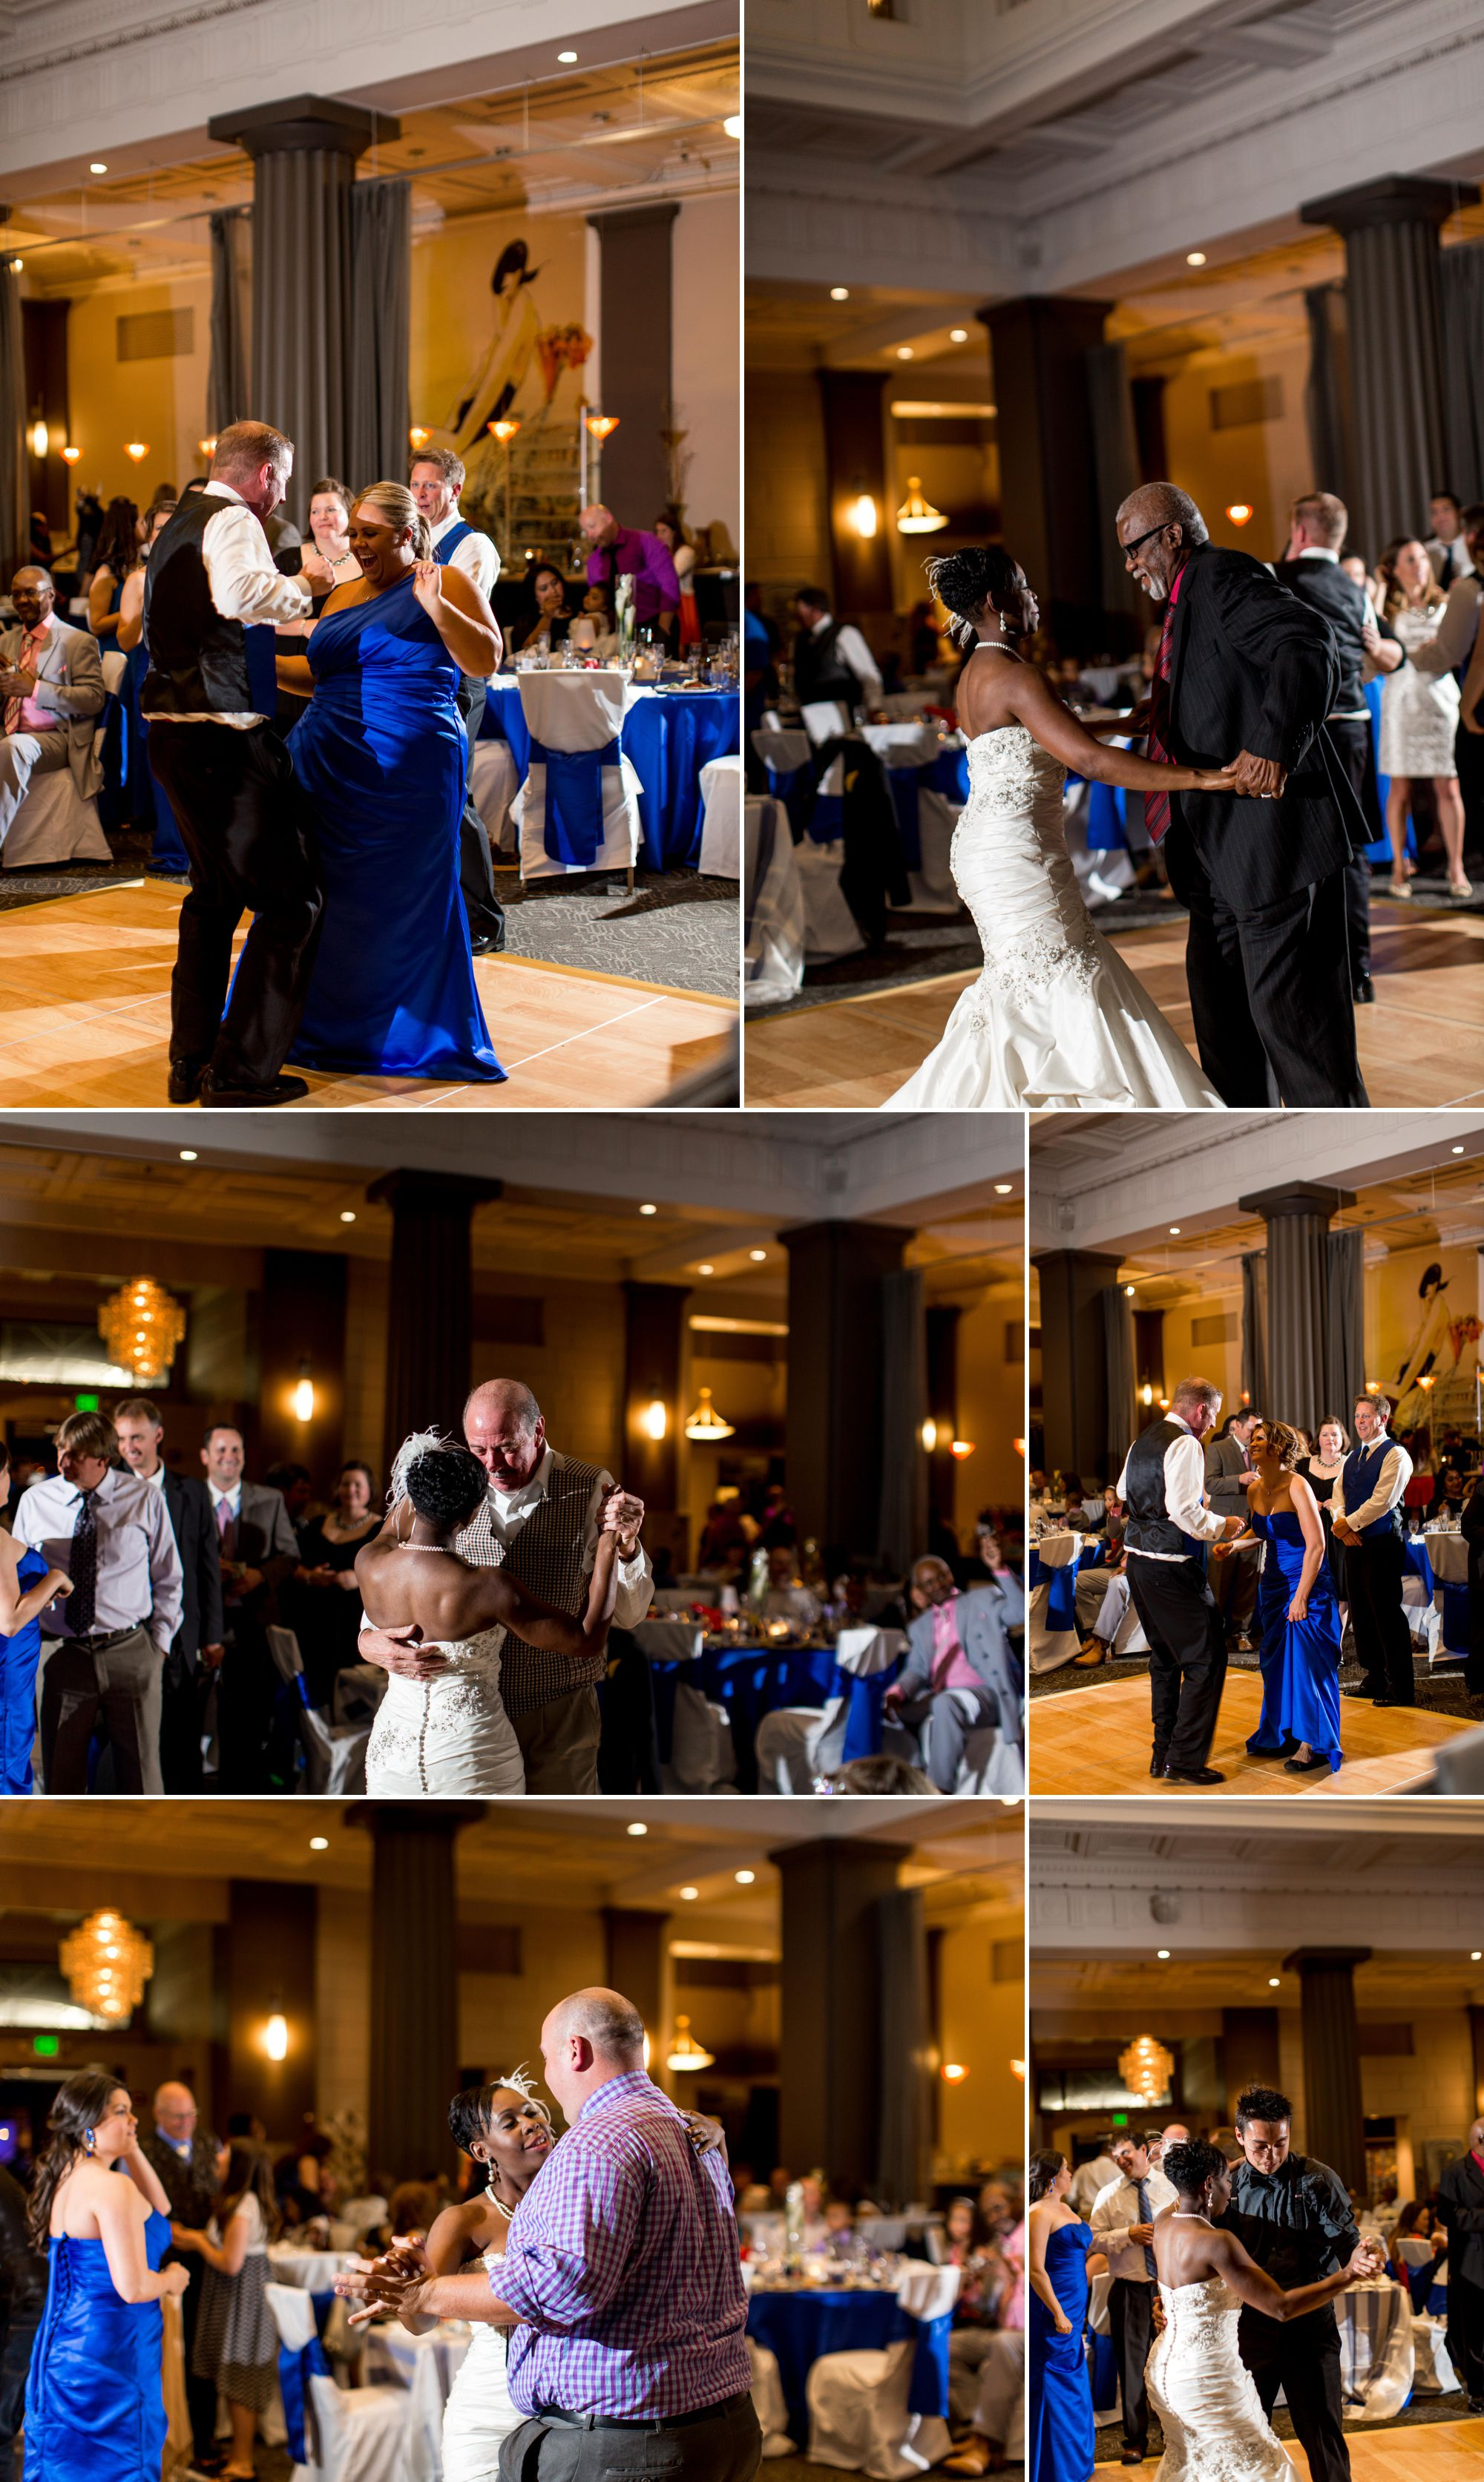 Love when the dancing begins at a reception!